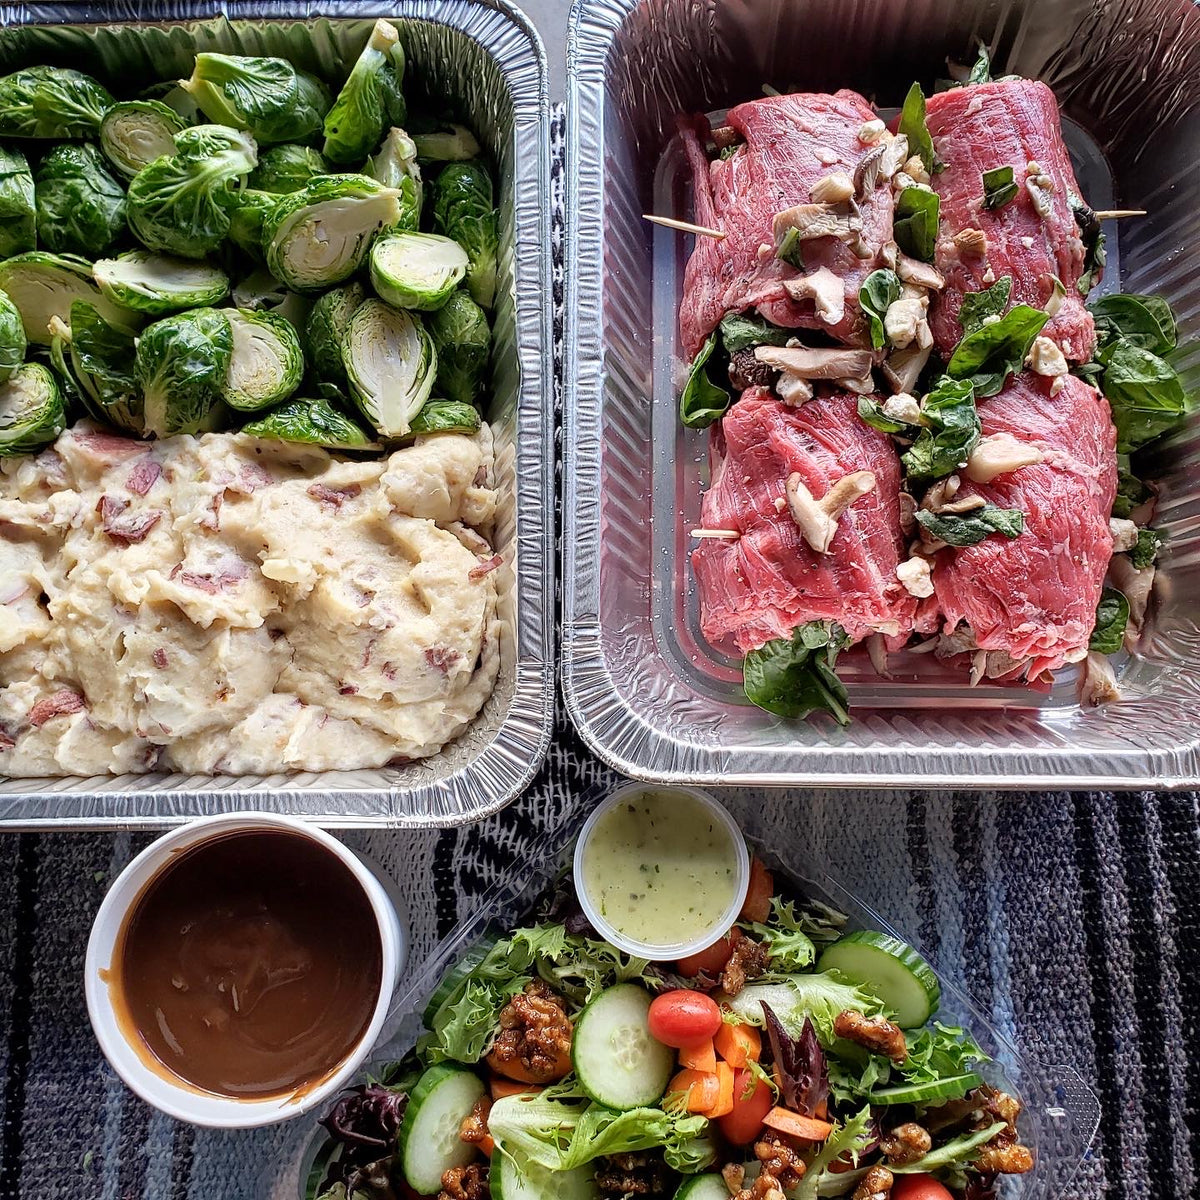 Stuffed Flank Steak Assembly Instructions